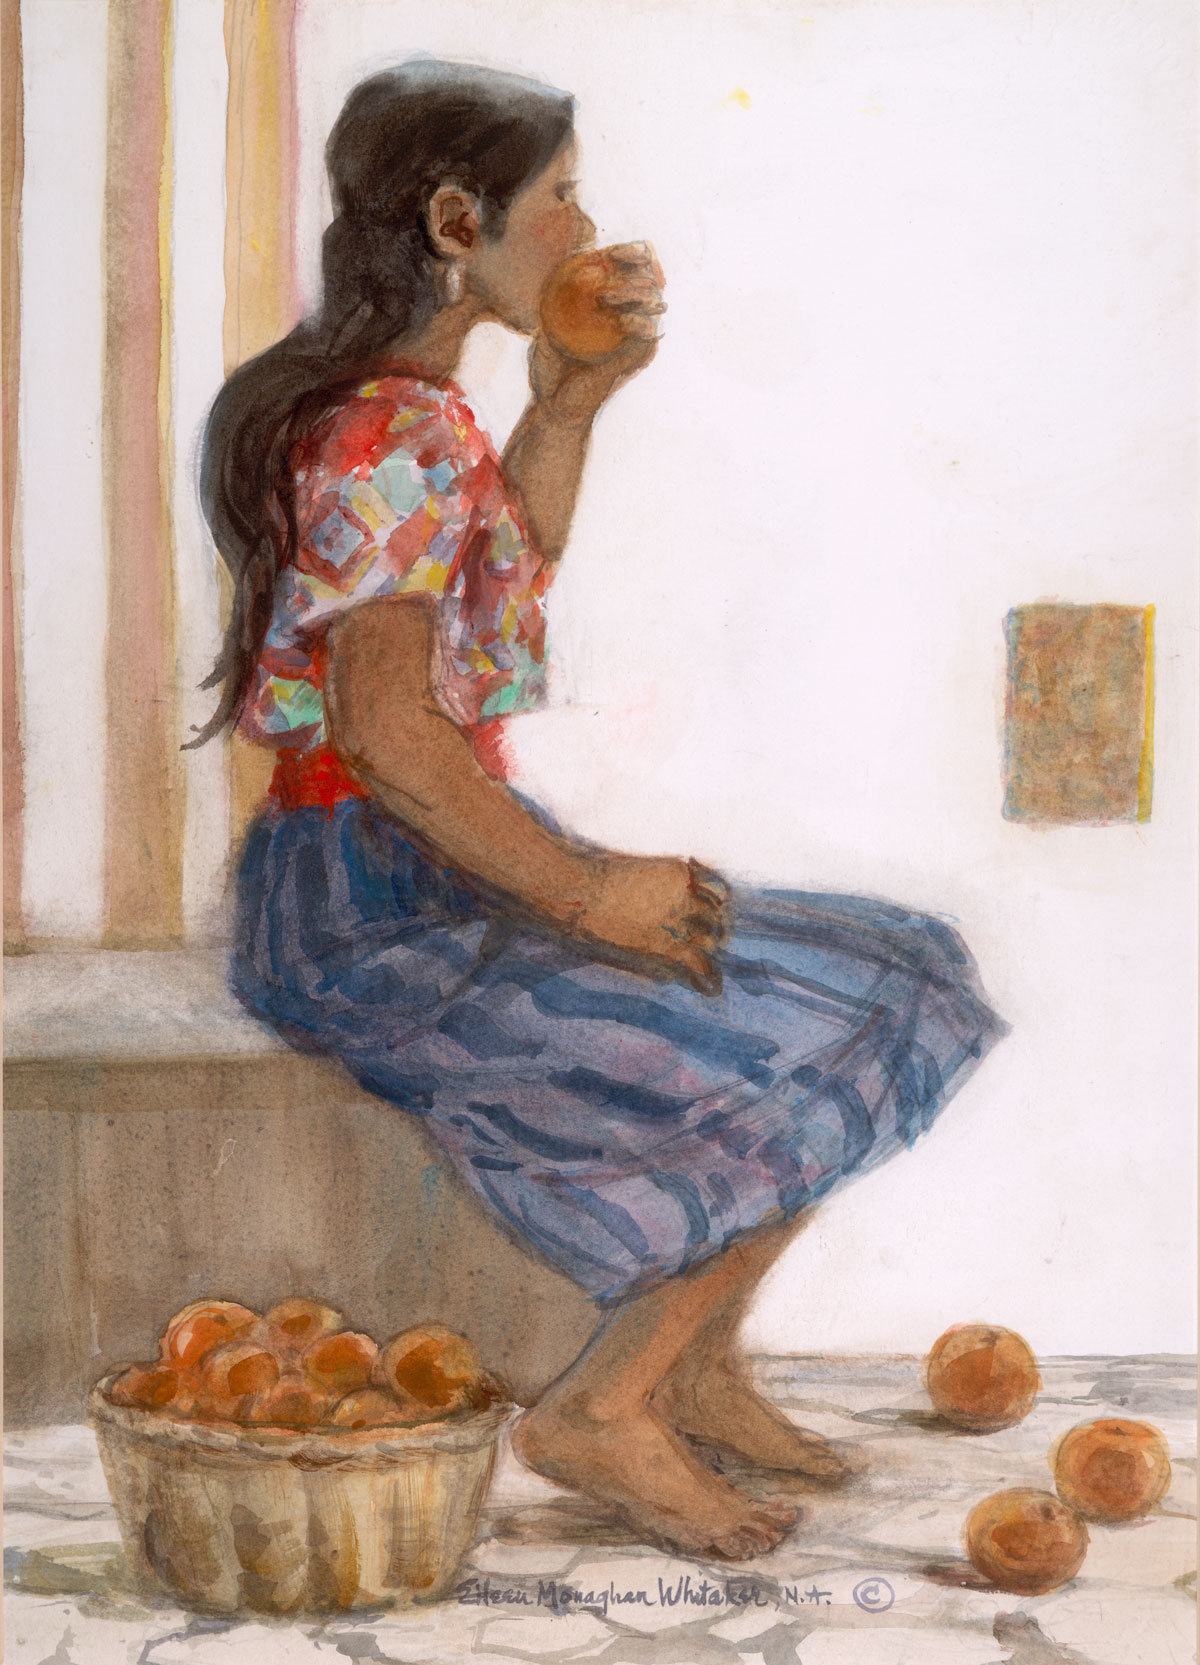 """""""Sampling the Produce"""" 1992 © Eileen Monaghan Whitaker N.A. 22x16 inches Watercolor"""